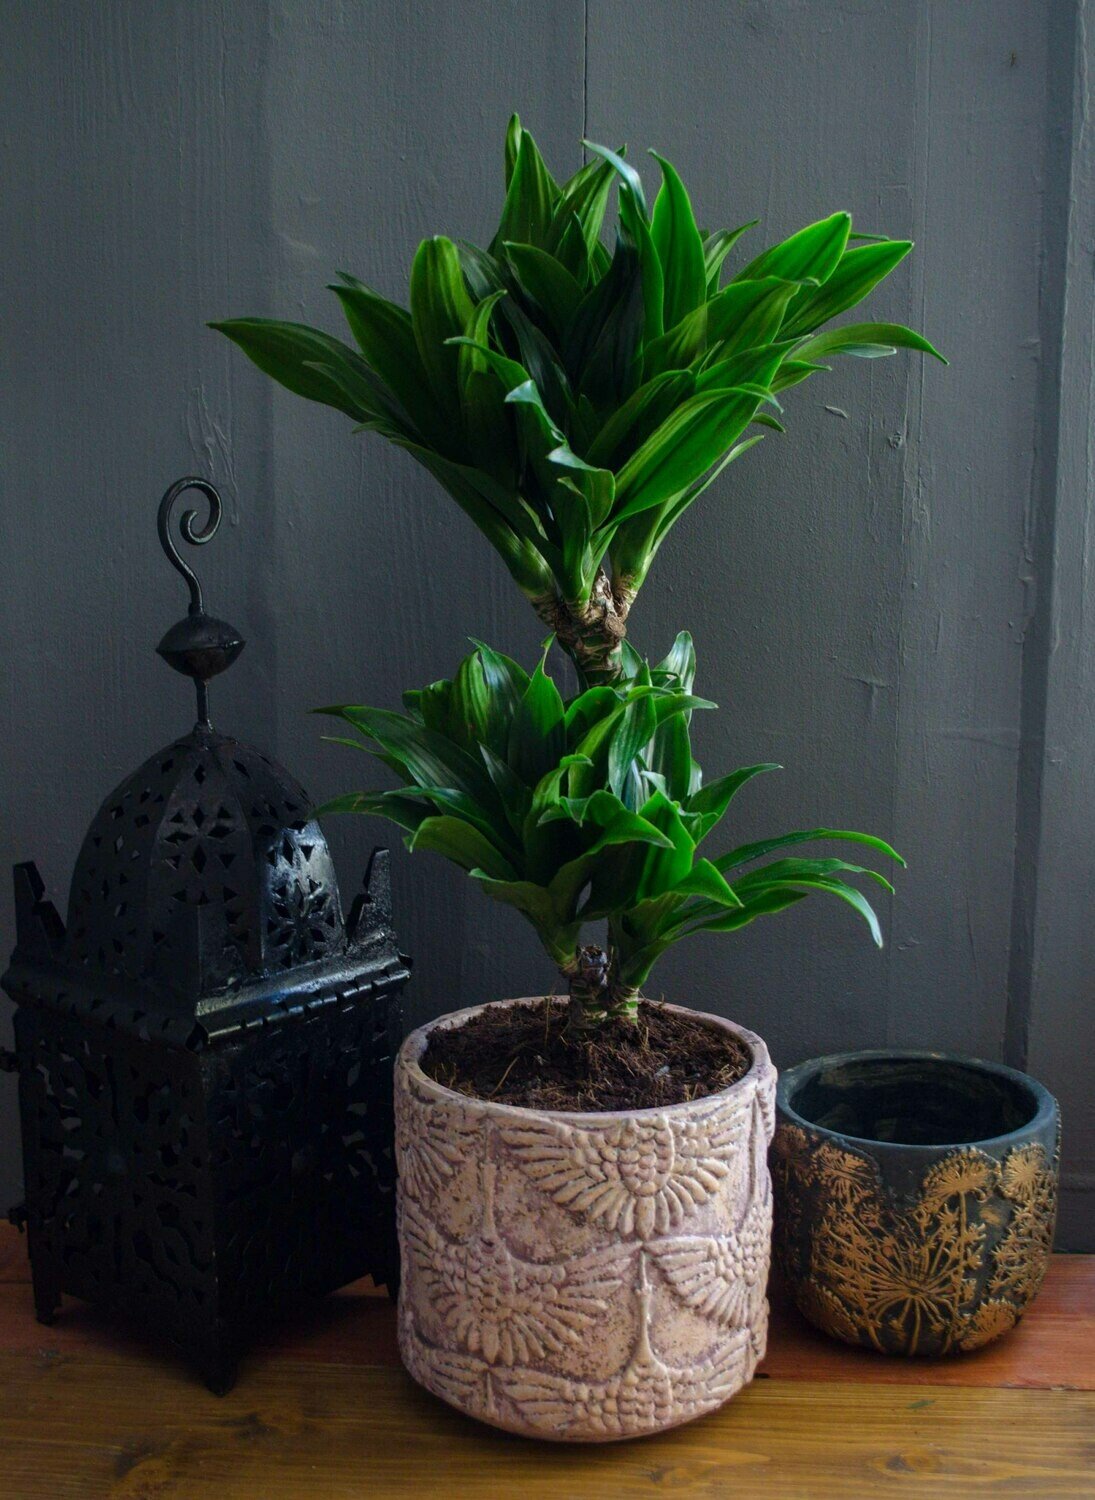 Dracaena in 'Yuda' Pot